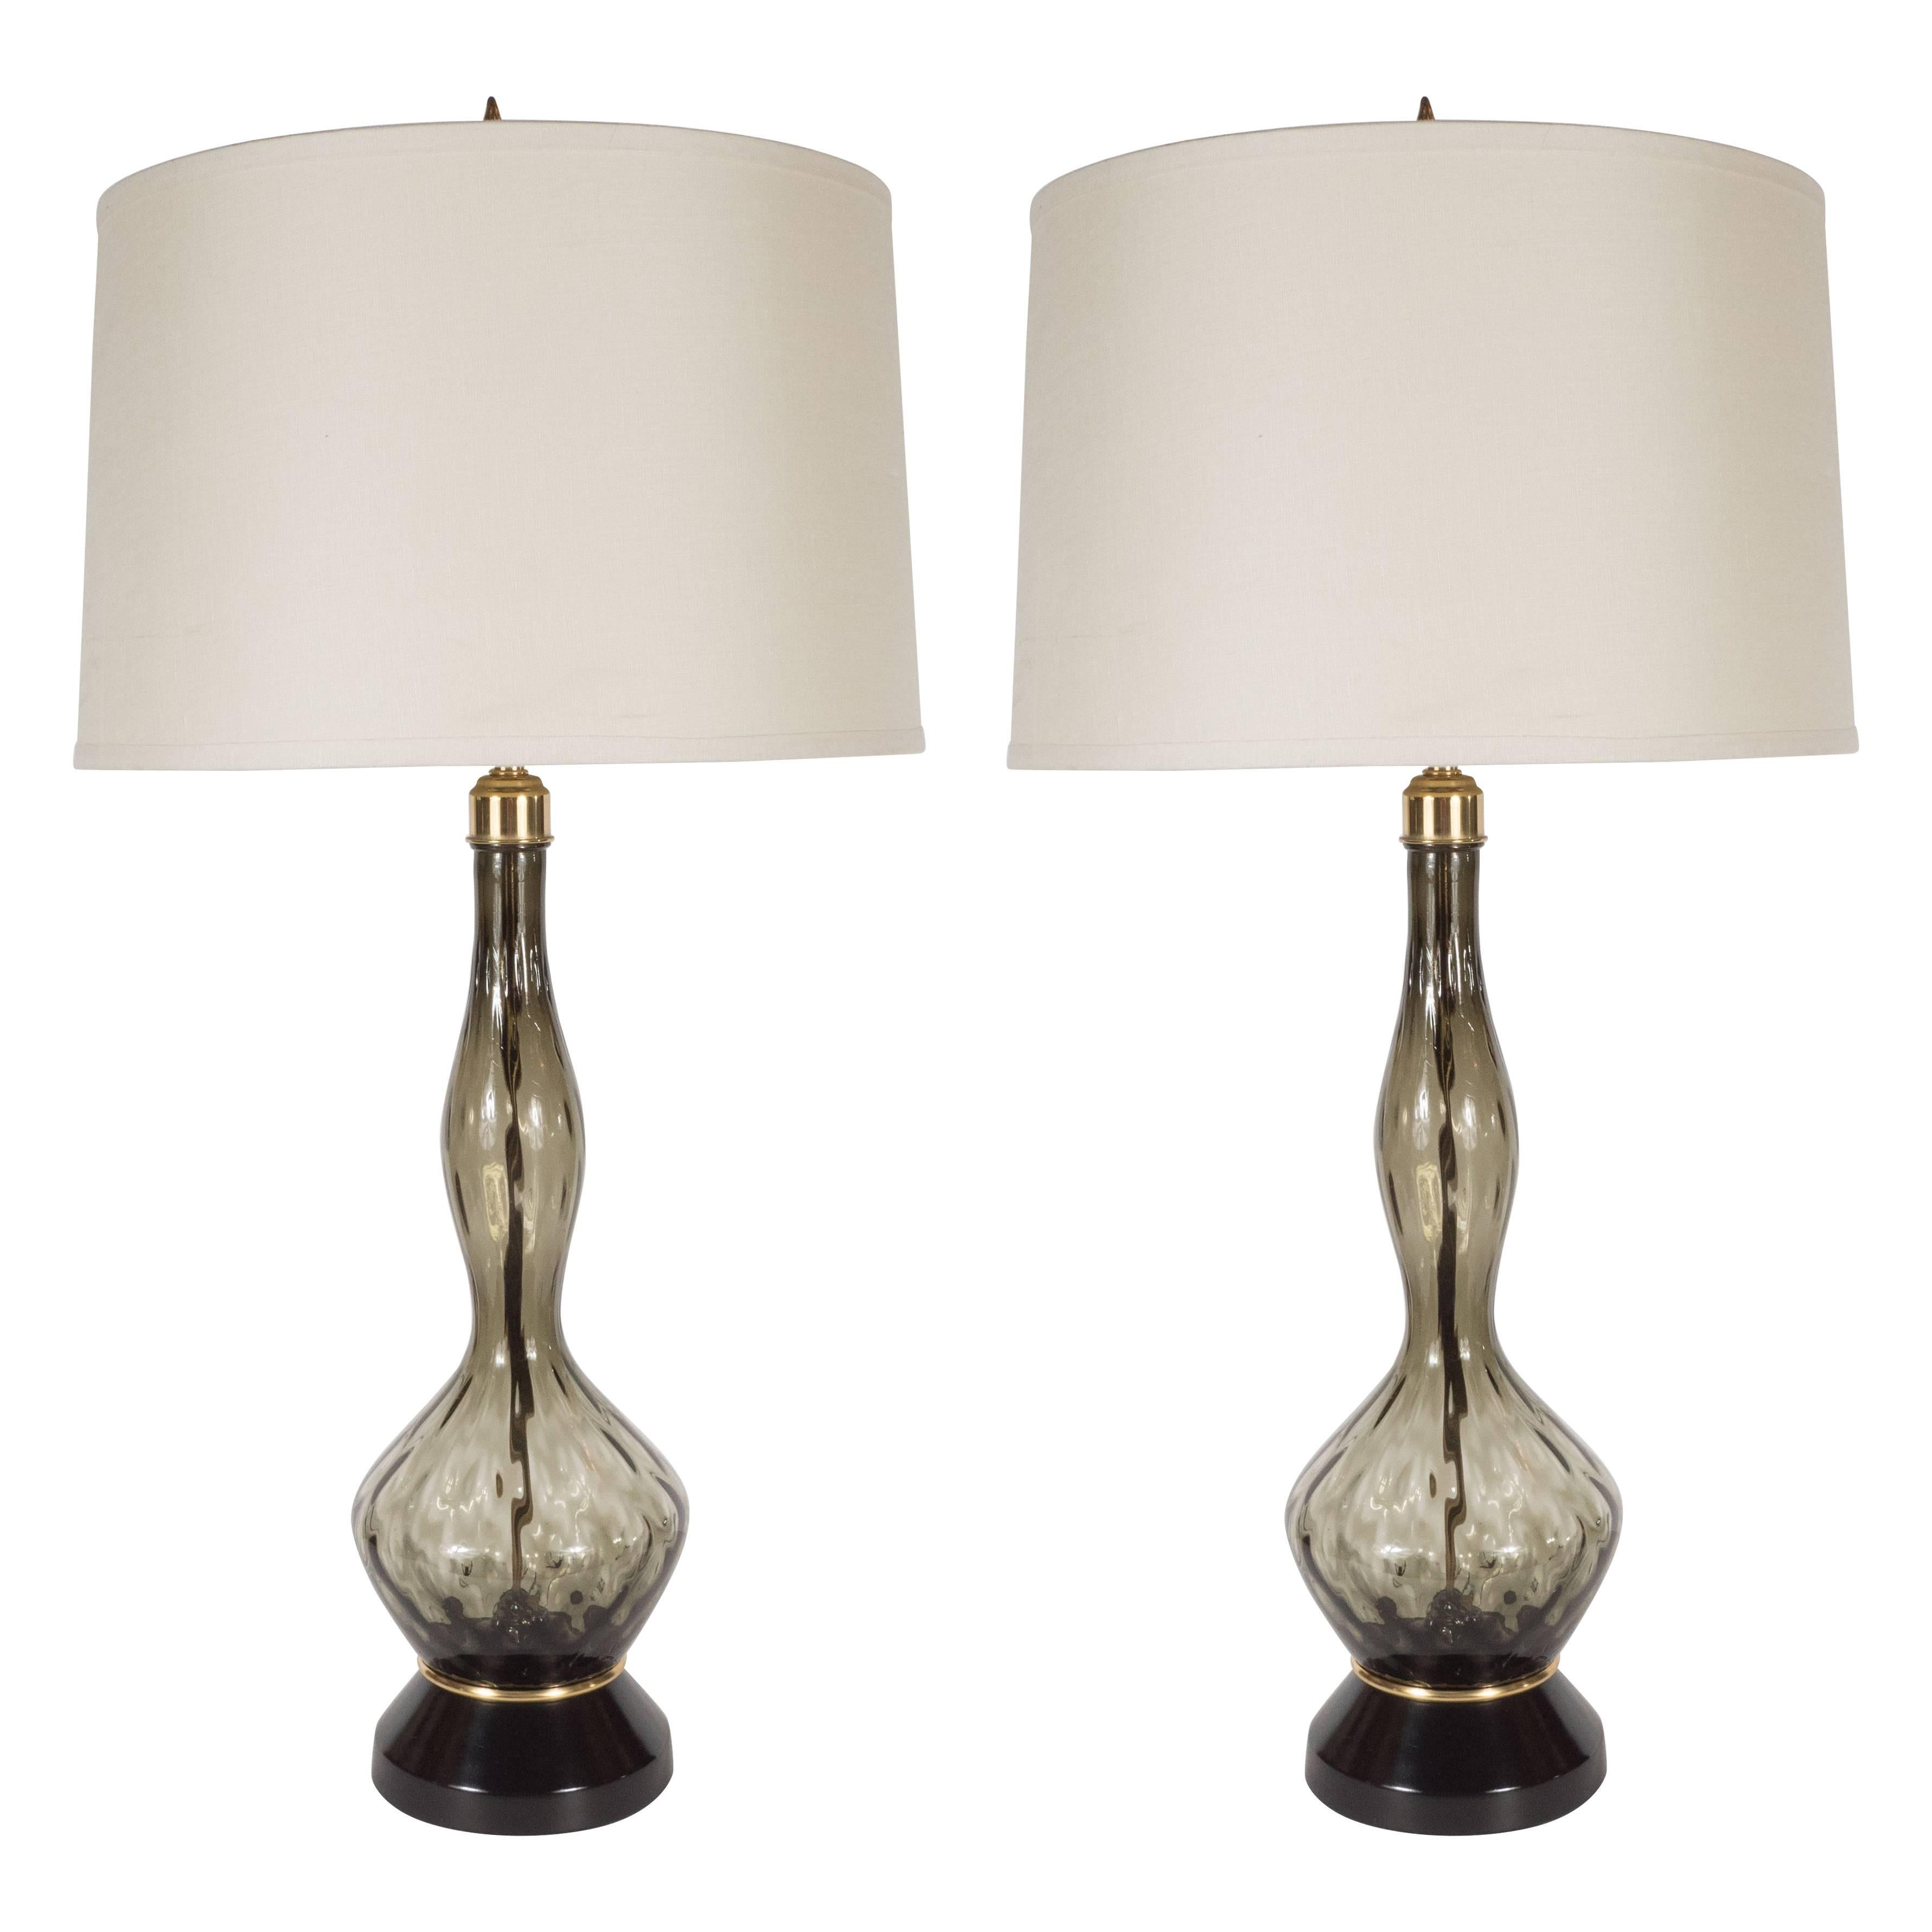 Pair of Mid-Century Table Lamps in Smoked Murano Glass with Brass Fittings